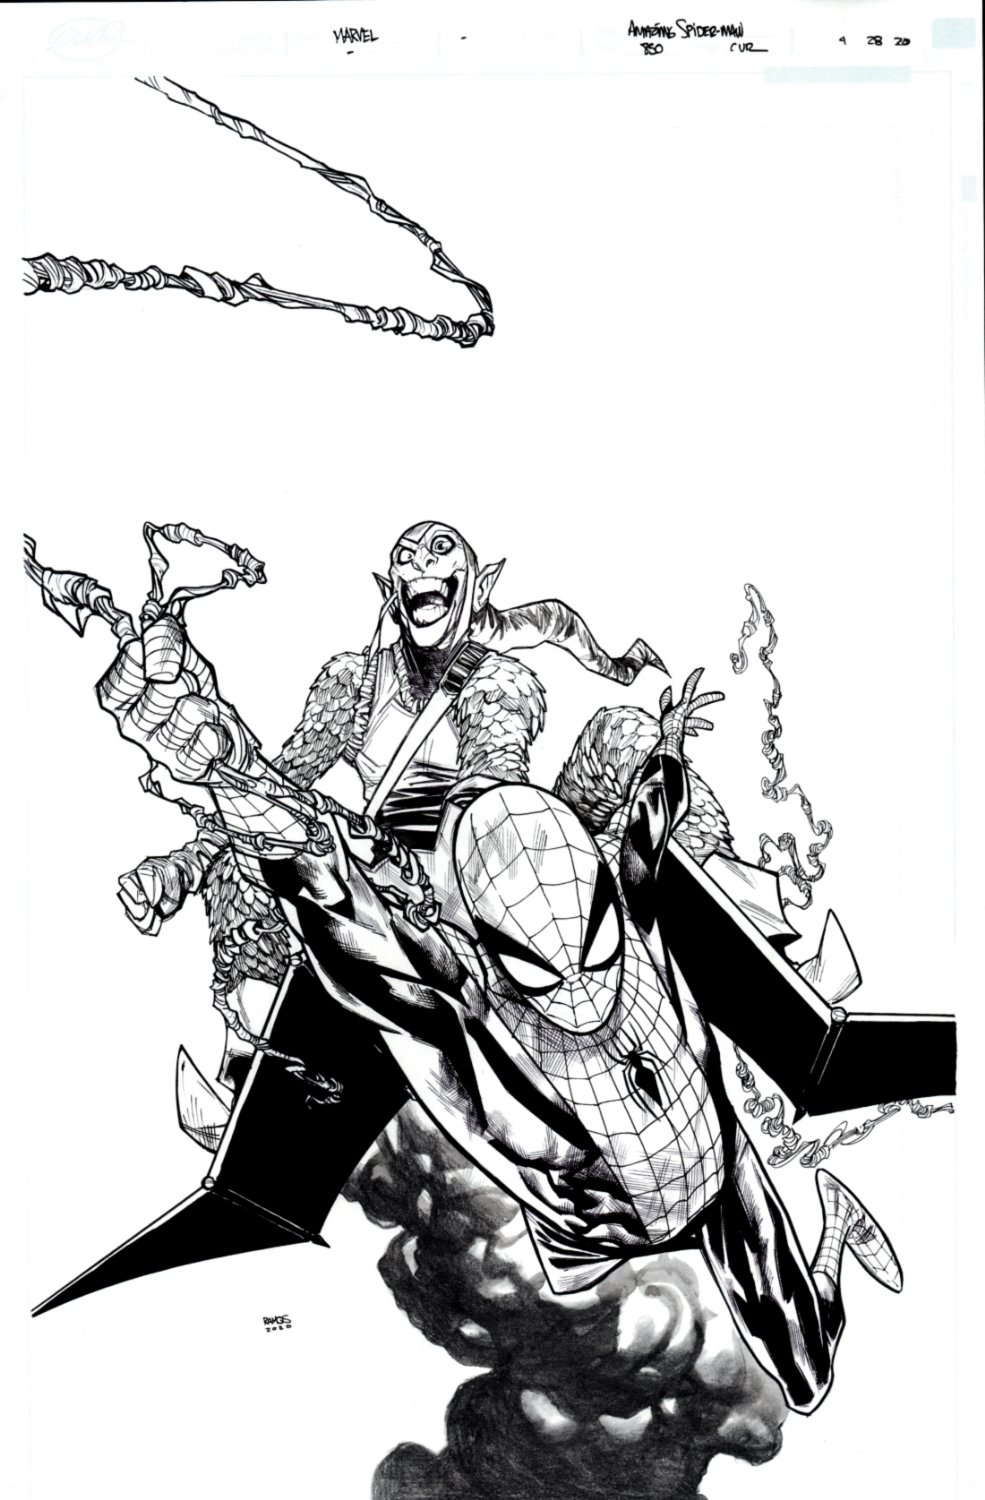 Amazing Spider-Man #850 Unused Cover (THE GREEN GOBLIN RETURNS!) 2020